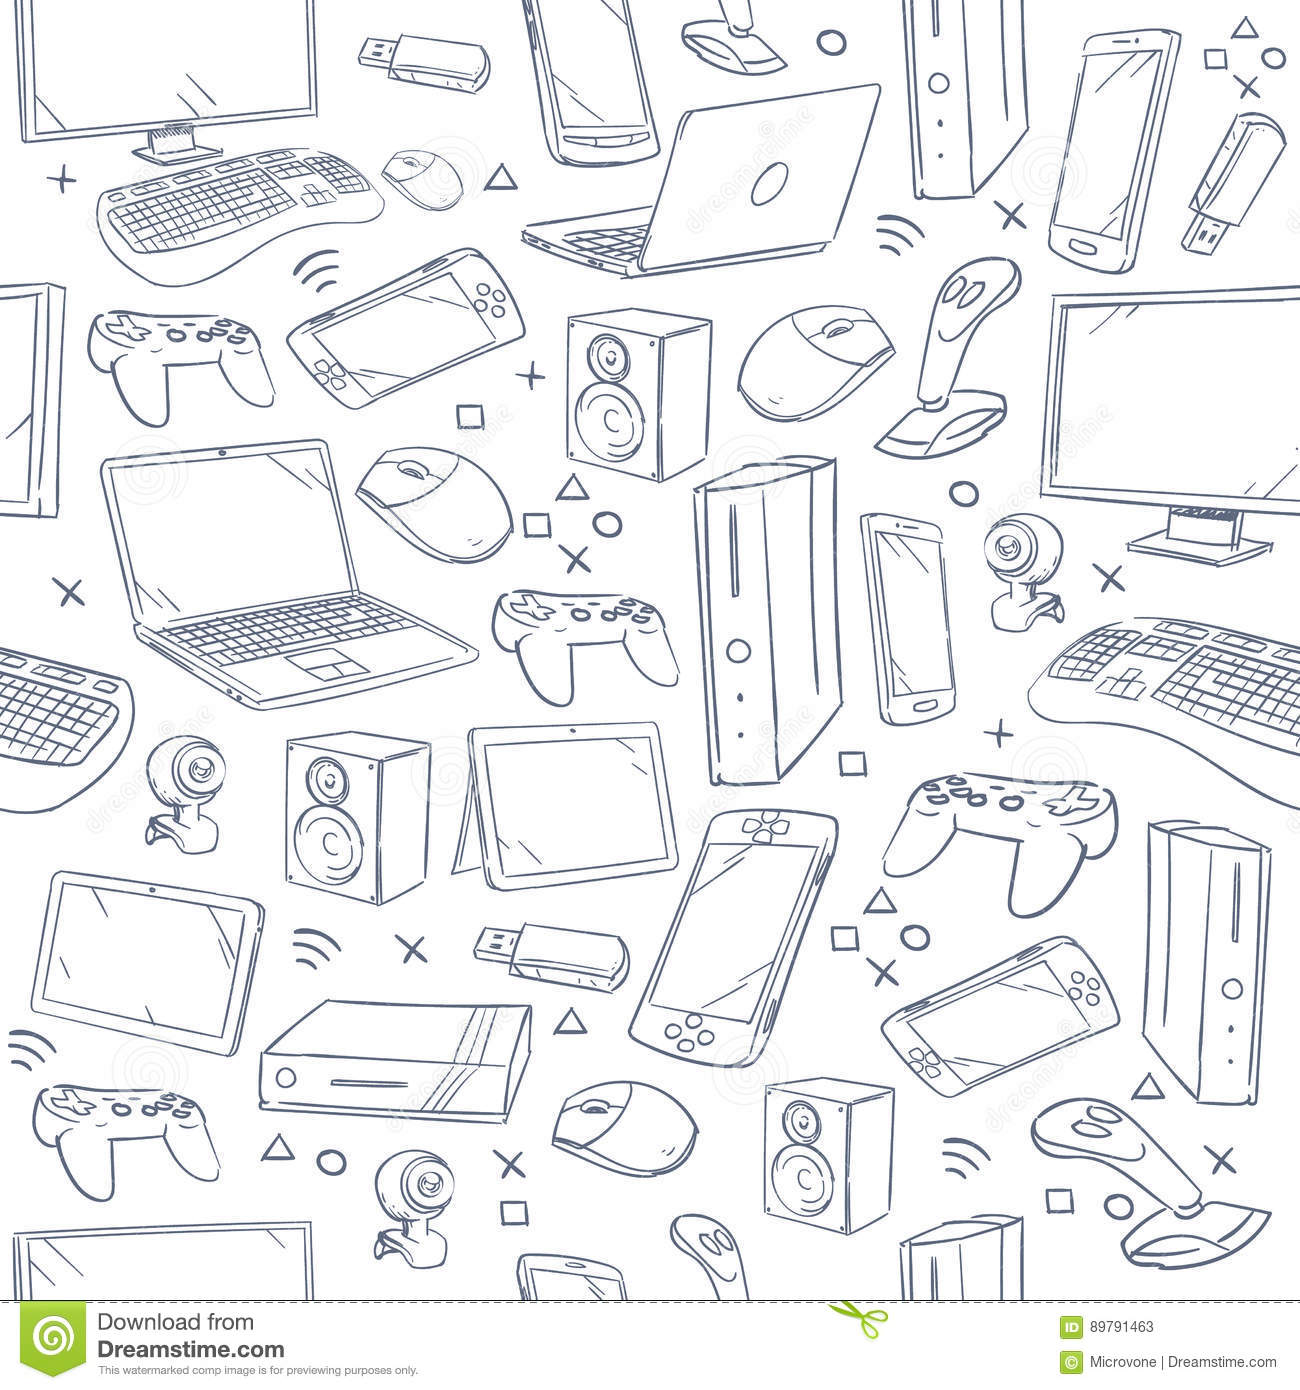 Computer Game Device Social Gaming Vector Sketch Doodles